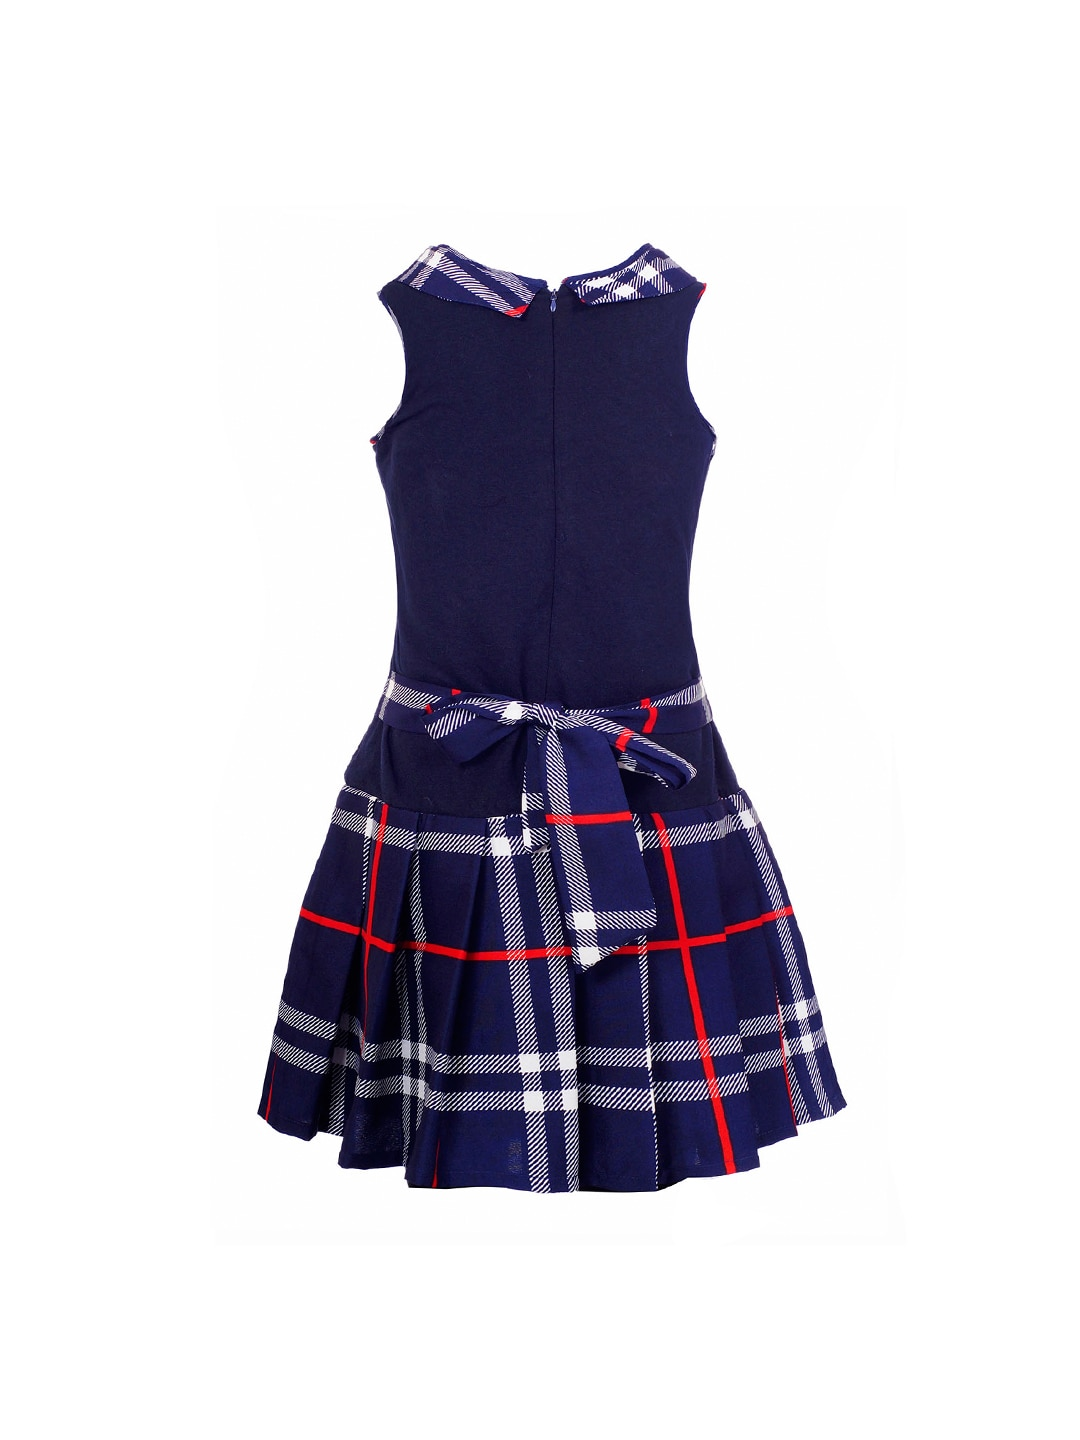 purchase girls Shop lands' end school uniform store for school uniforms for girls & boys   simply return it to us at any time for an exchange or refund of its purchase price.